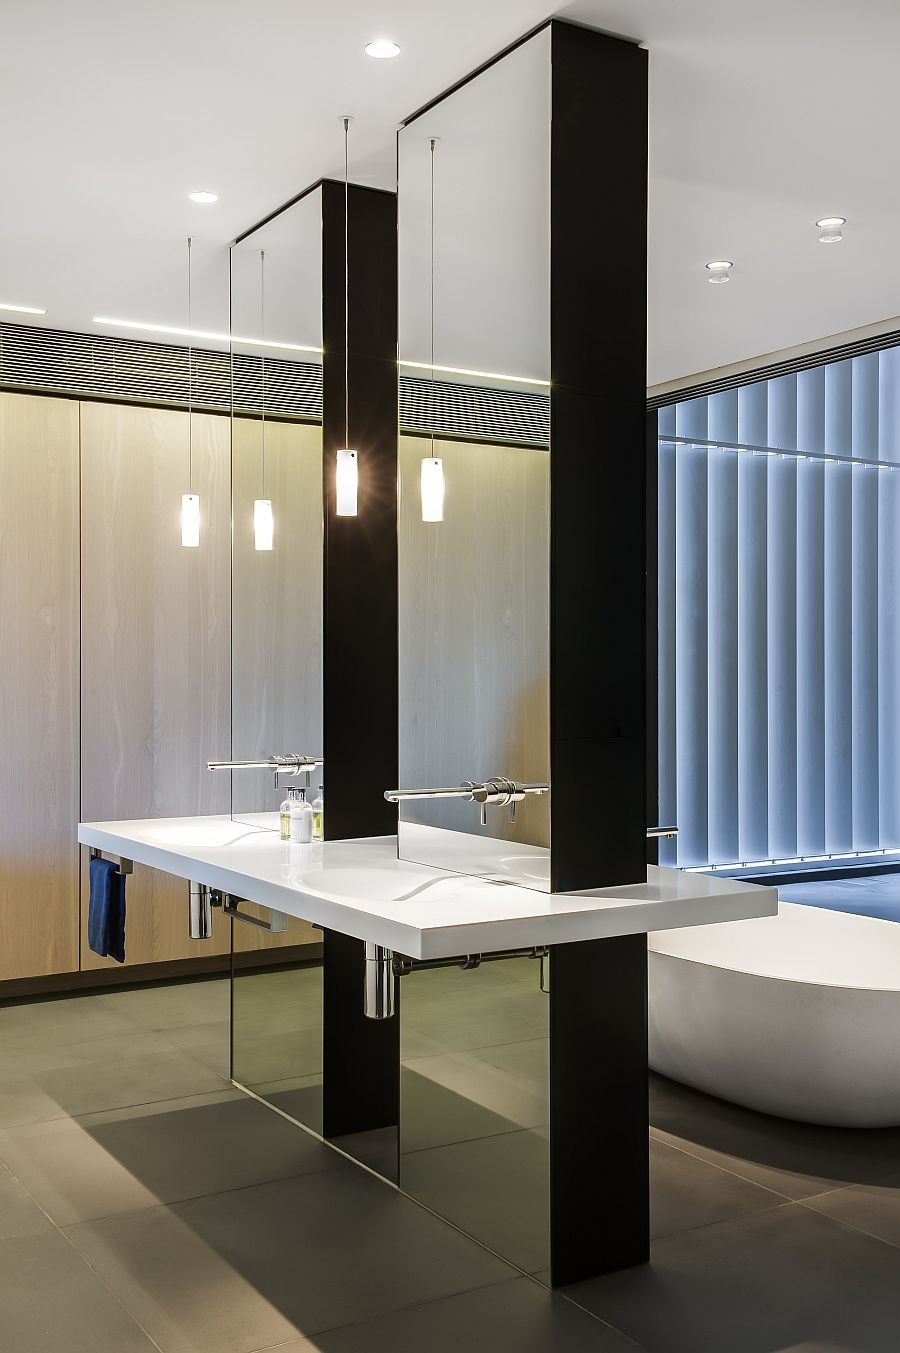 Contemporary Ensuite Bathroom With CuttingEdge Design in Sydney